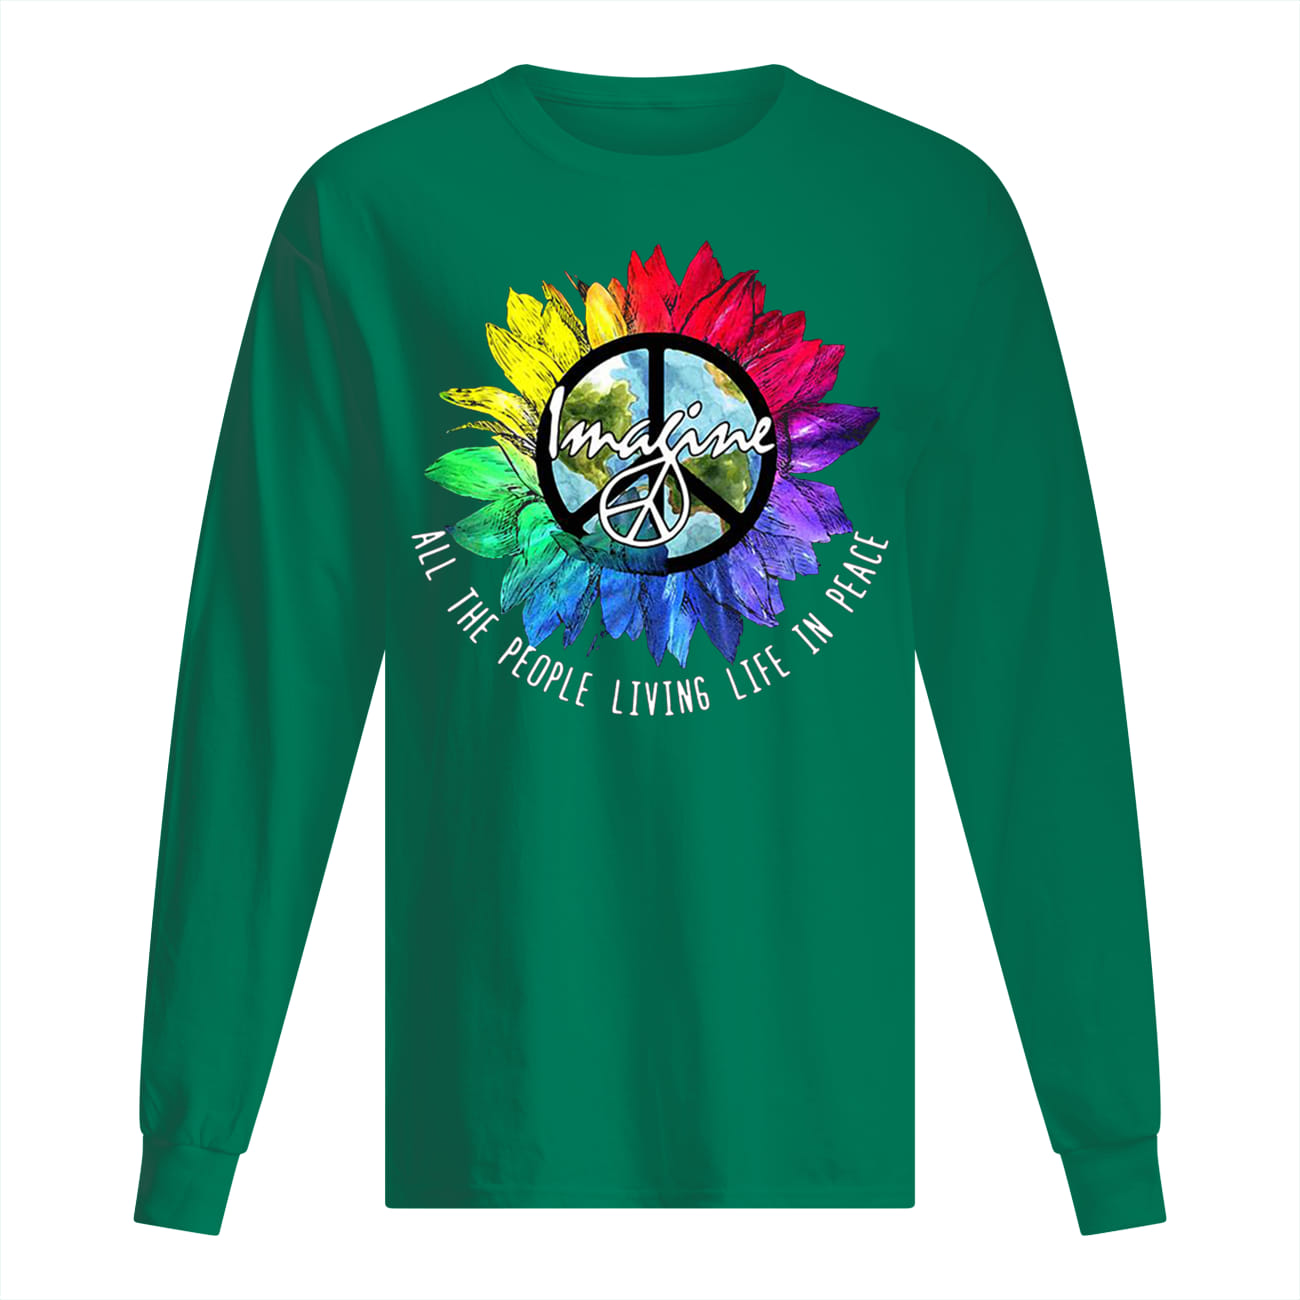 Imagine all the people living life in peace rainbow sunflower LGBTQ pride longsleeve tee